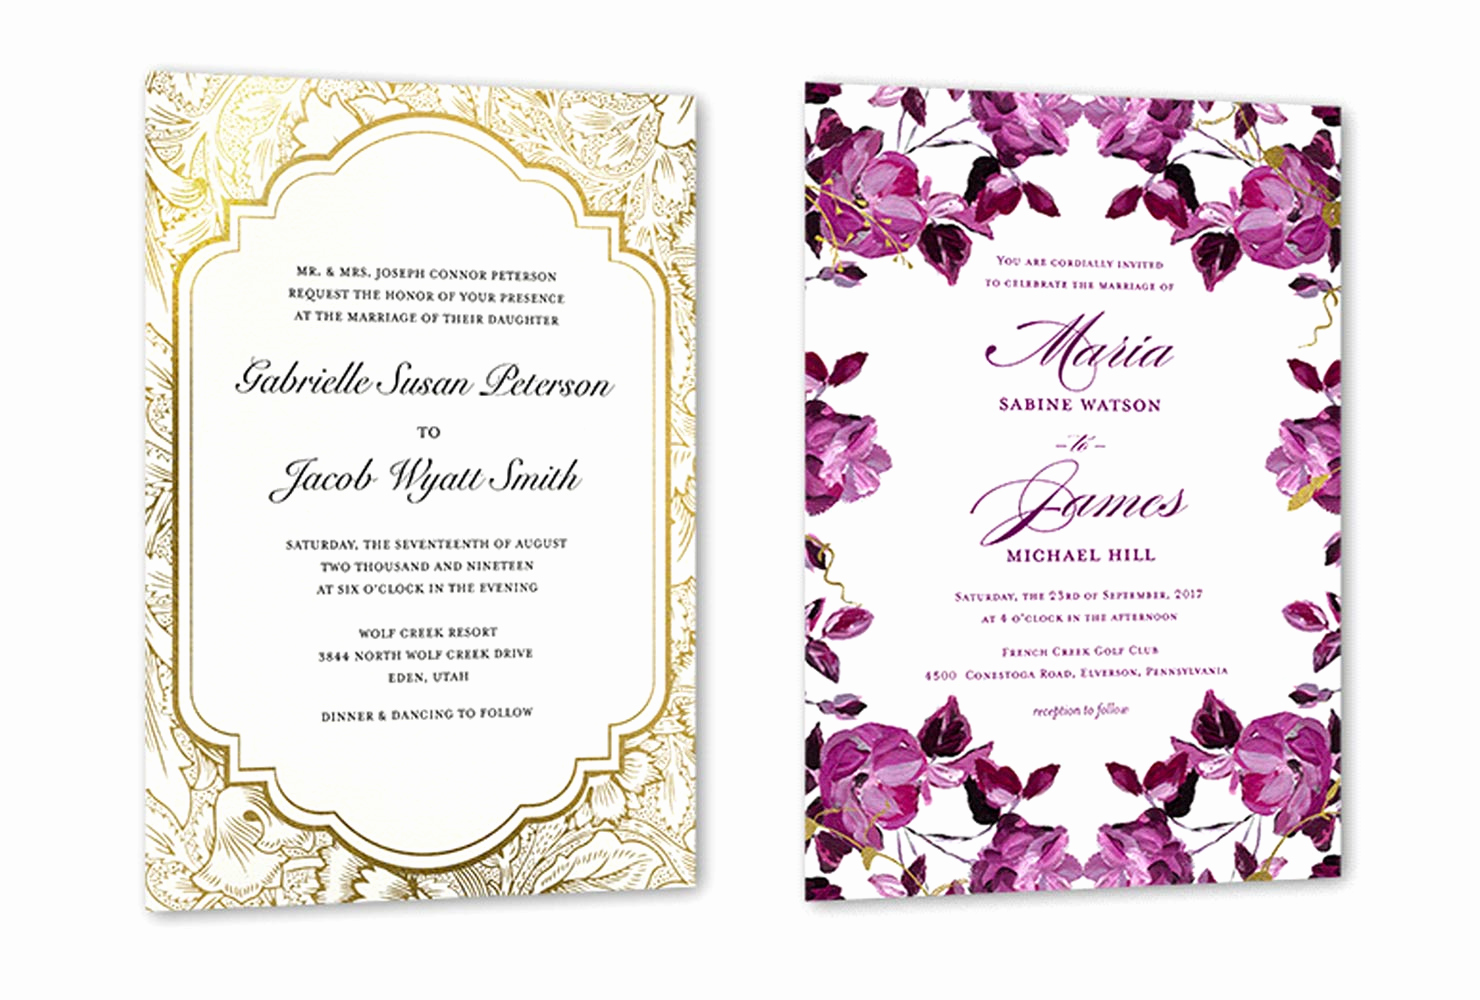 Sample Of Weeding Invitation Lovely 35 Wedding Invitation Wording Examples 2019